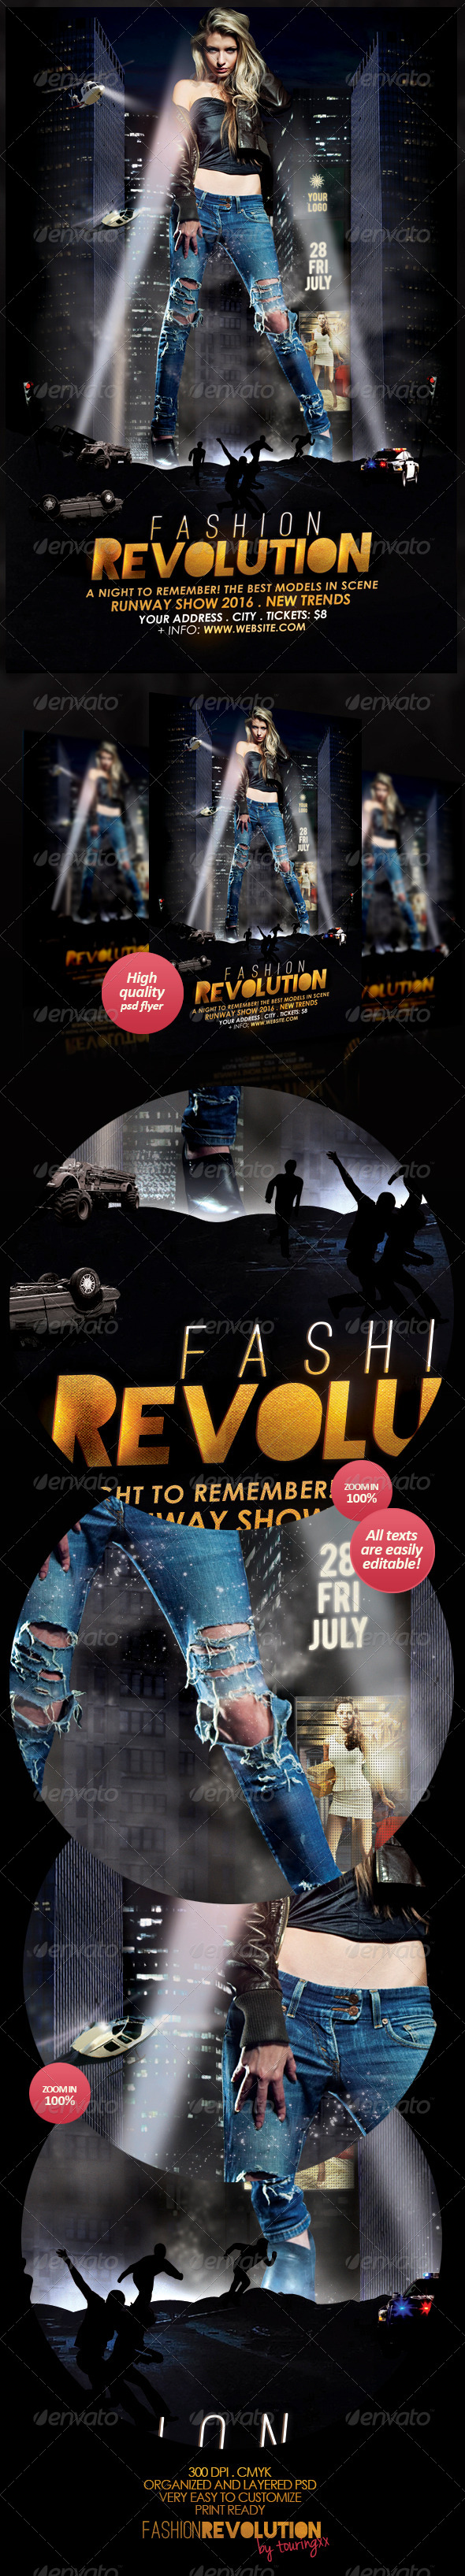 Fashion Revolution Flyer Template - Flyers Print Templates